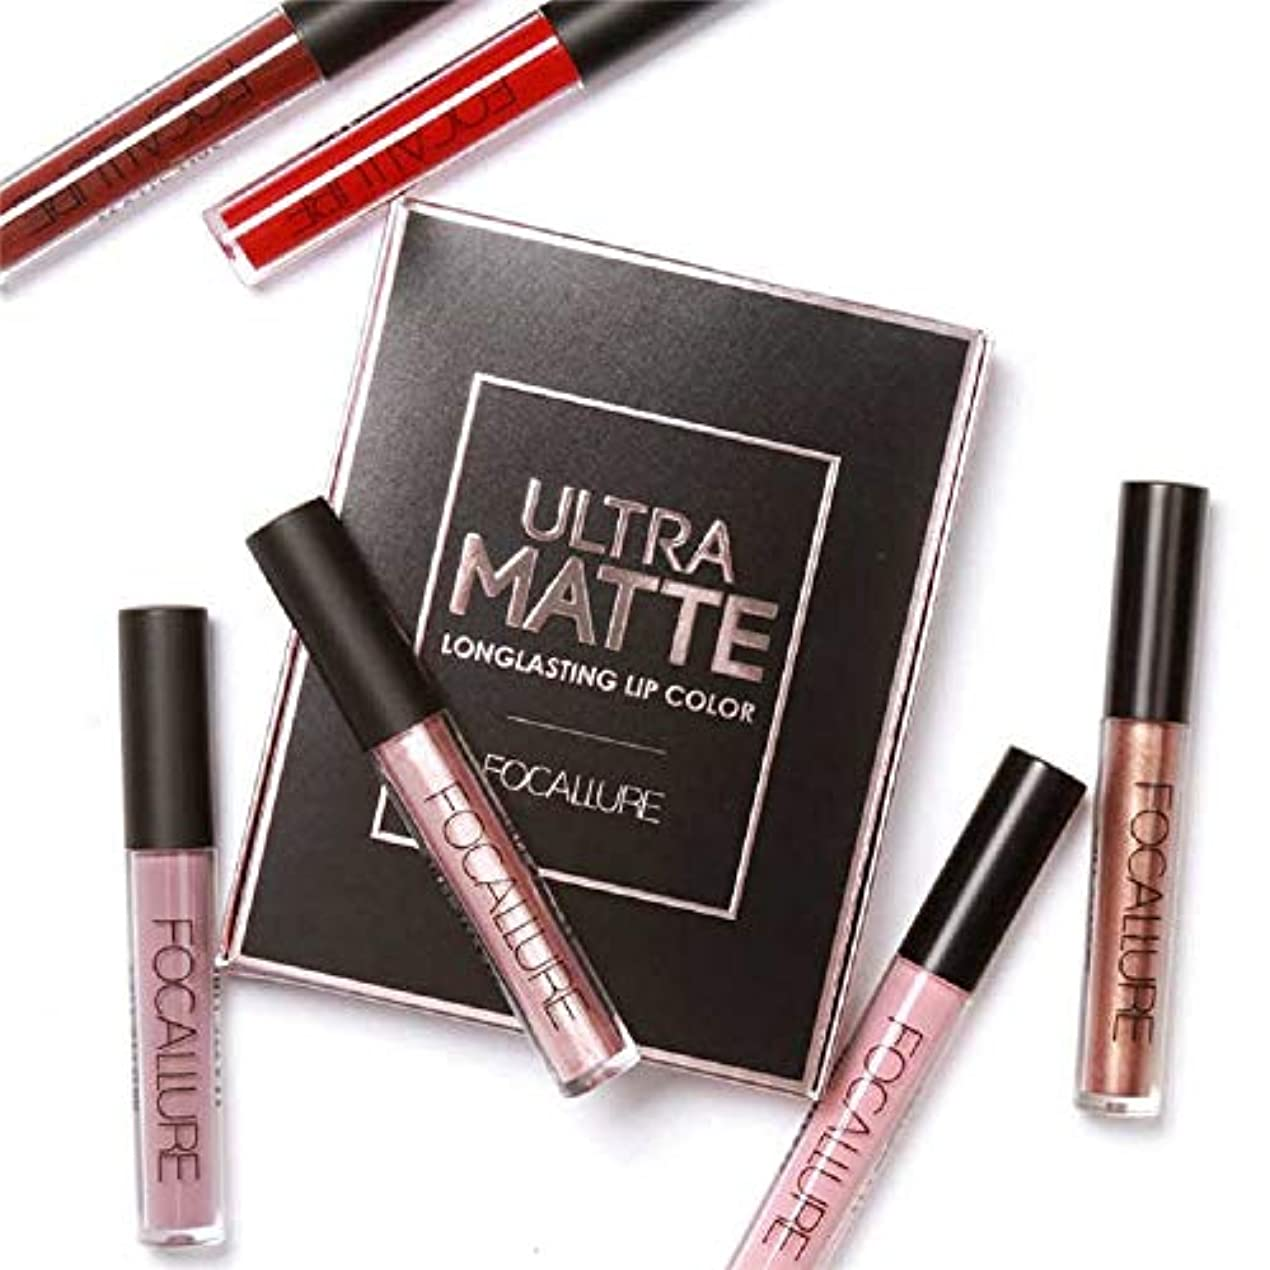 3Pcs/Set Long-lasting Lip Colors Makeup Waterproof Tint Lip Gloss Red Velvet Ultra Nude Matte Lipstick Set リップカラーメーキャップ...